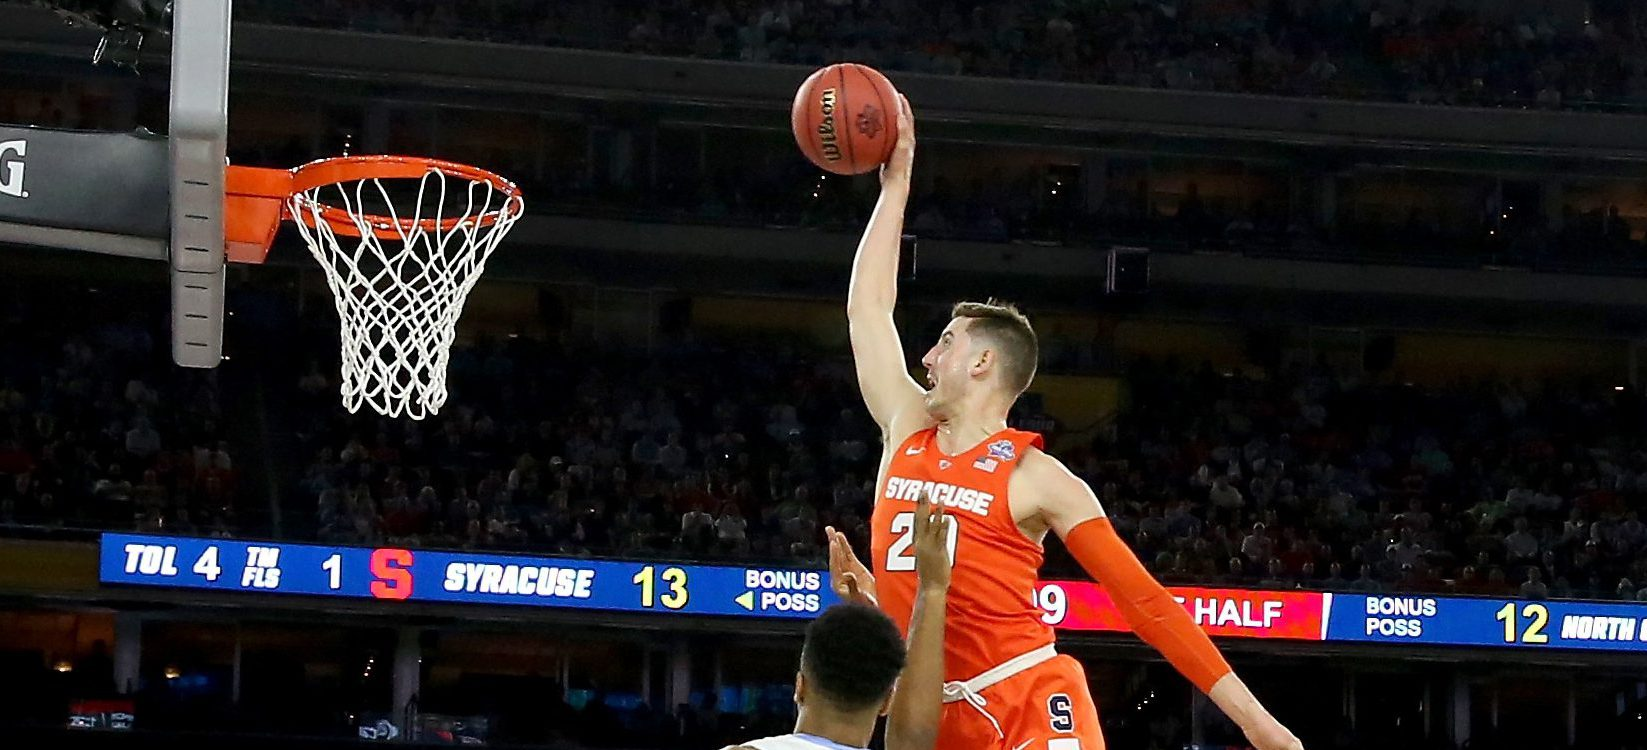 HOUSTON, TEXAS - APRIL 02:  Tyler Lydon #20 of the Syracuse Orange attempts to dunk the ball against Isaiah Hicks #4 of the North Carolina Tar Heels in the first half during the NCAA Men's Final Four Semifinal at NRG Stadium on April 2, 2016 in Houston, Texas.  (Photo by Ronald Martinez/Getty Images)